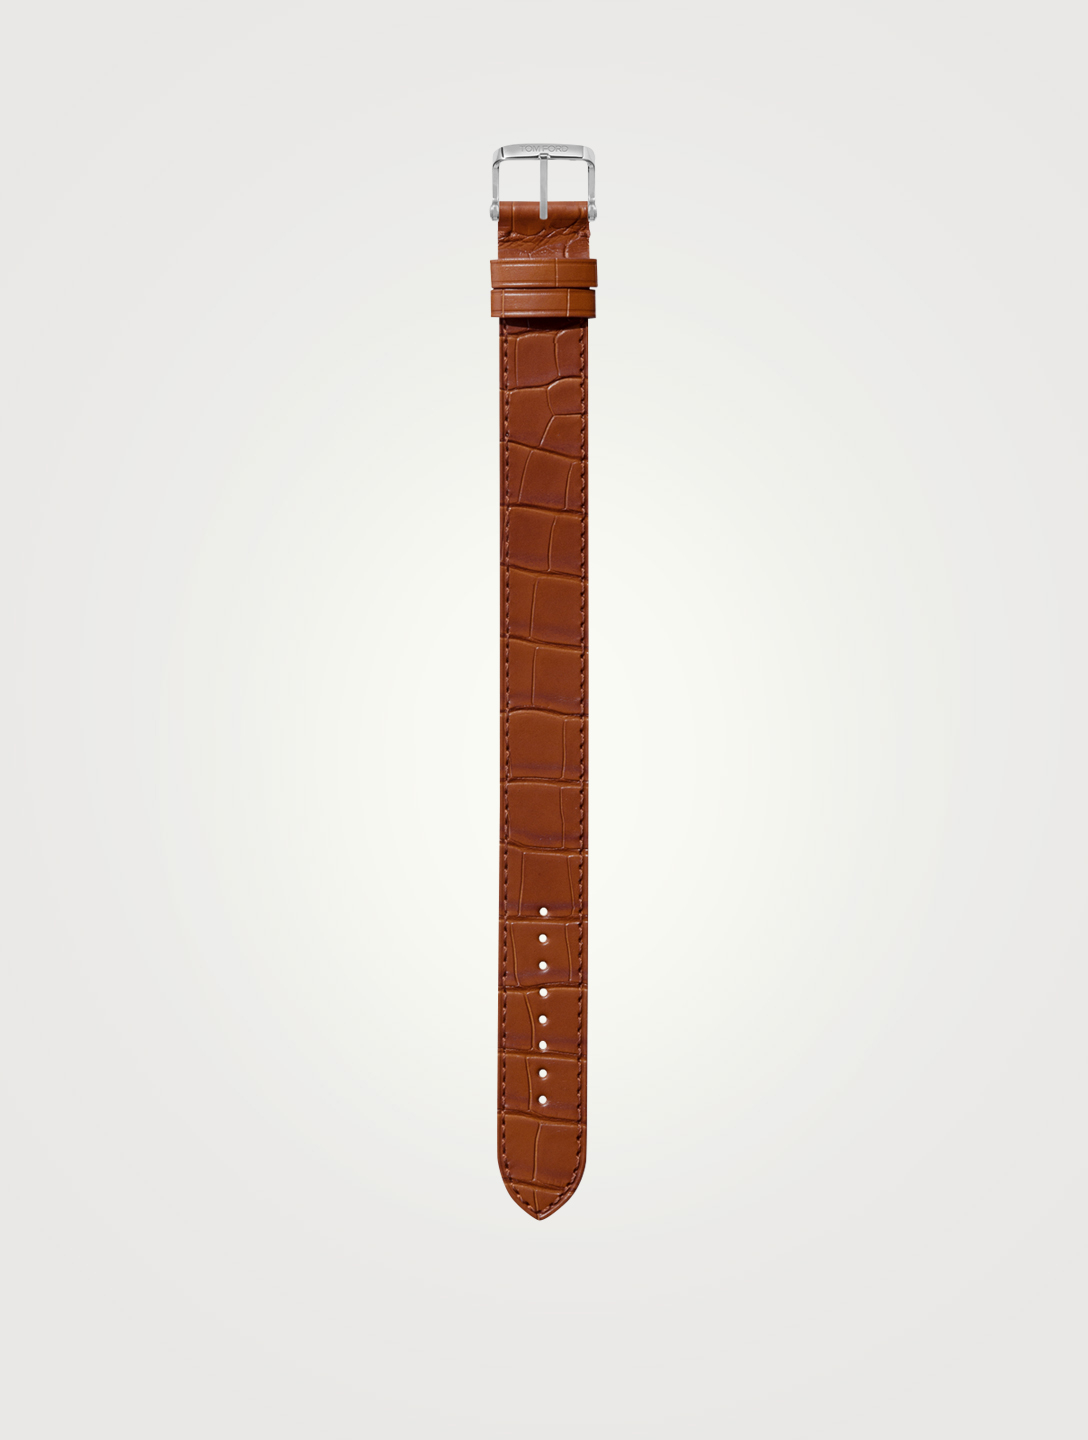 TOM FORD Bracelet en alligator, format moyen, 19 mm Hommes Marron